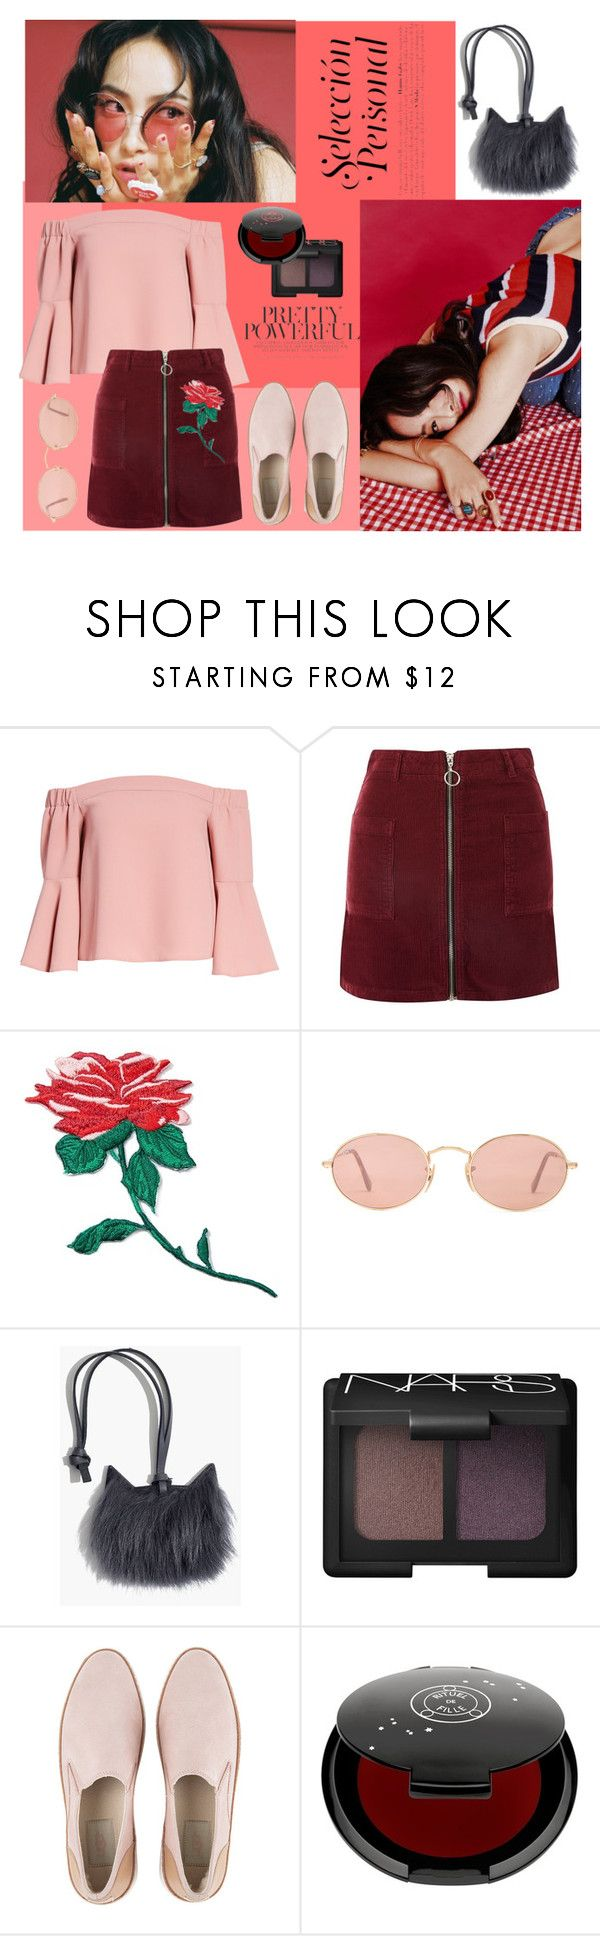 """""""Pretty Powerful"""" by krisscoryfransiska ❤ liked on Polyvore featuring Topshop, band.do, Ray-Ban, Madewell, NARS Cosmetics, UGG, Rituel de Fille, kpop and koreanlook"""